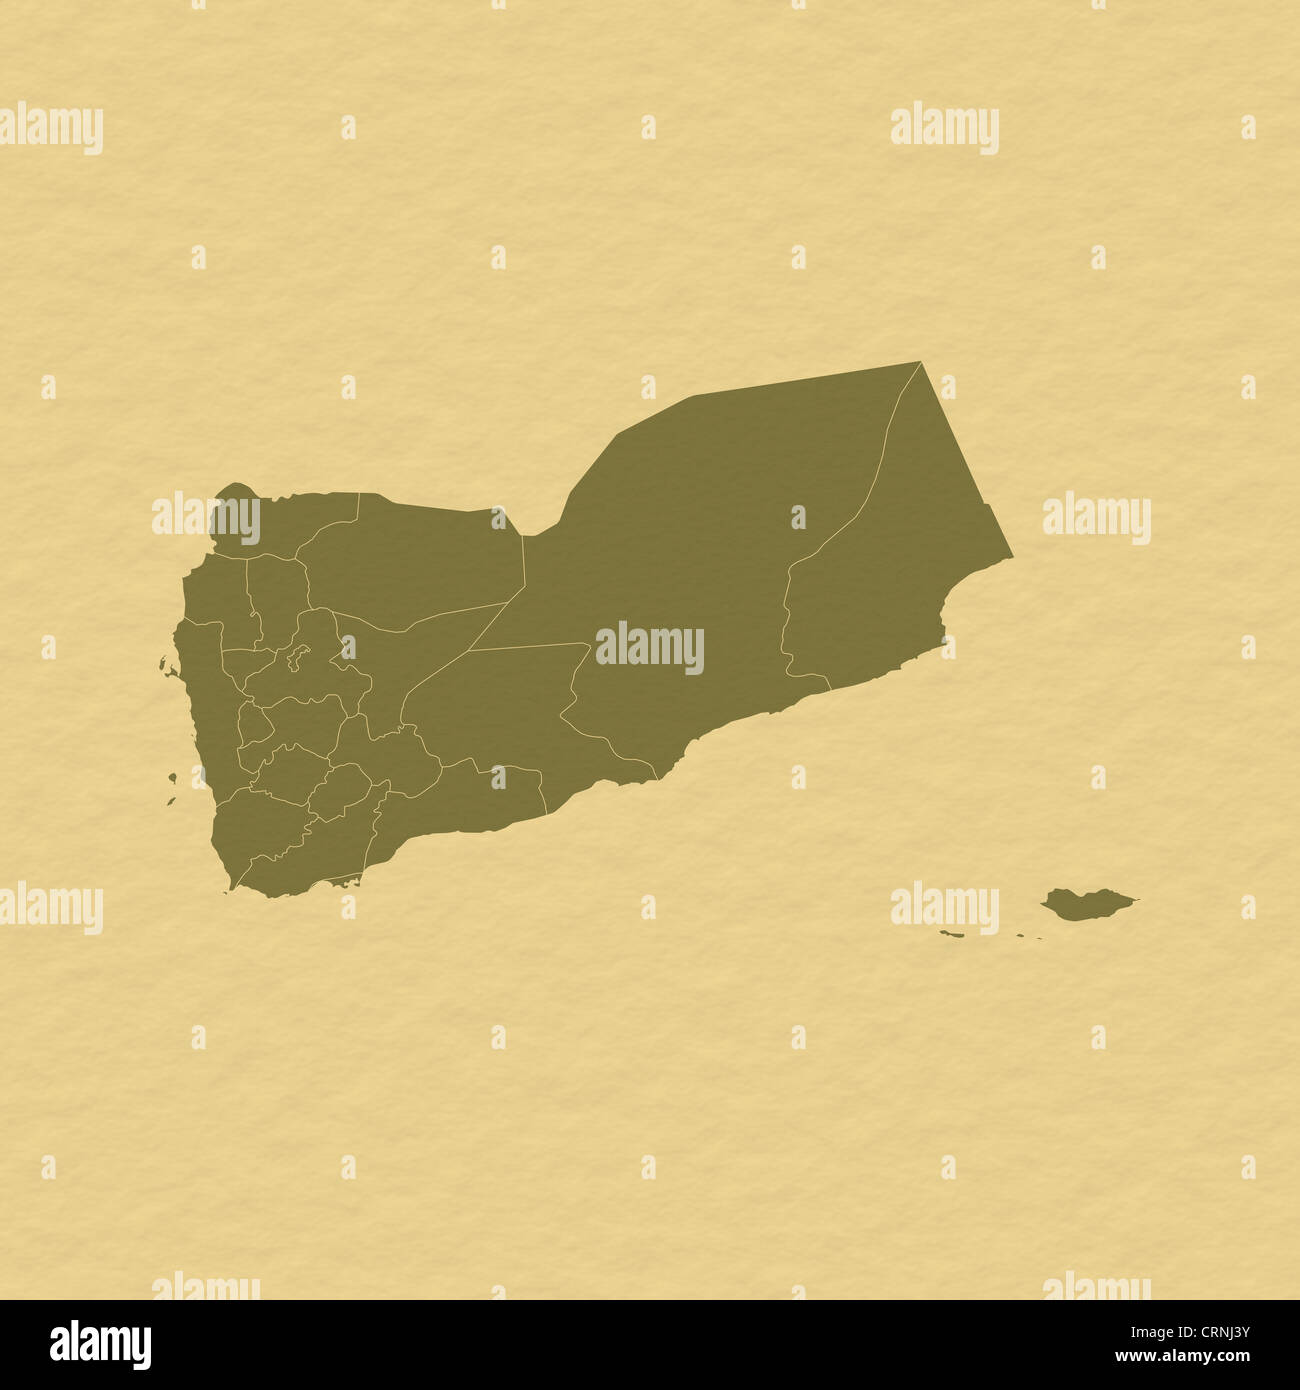 Political Map Of Yemen.Political Map Of Yemen With The Several Governorates Stock Photo